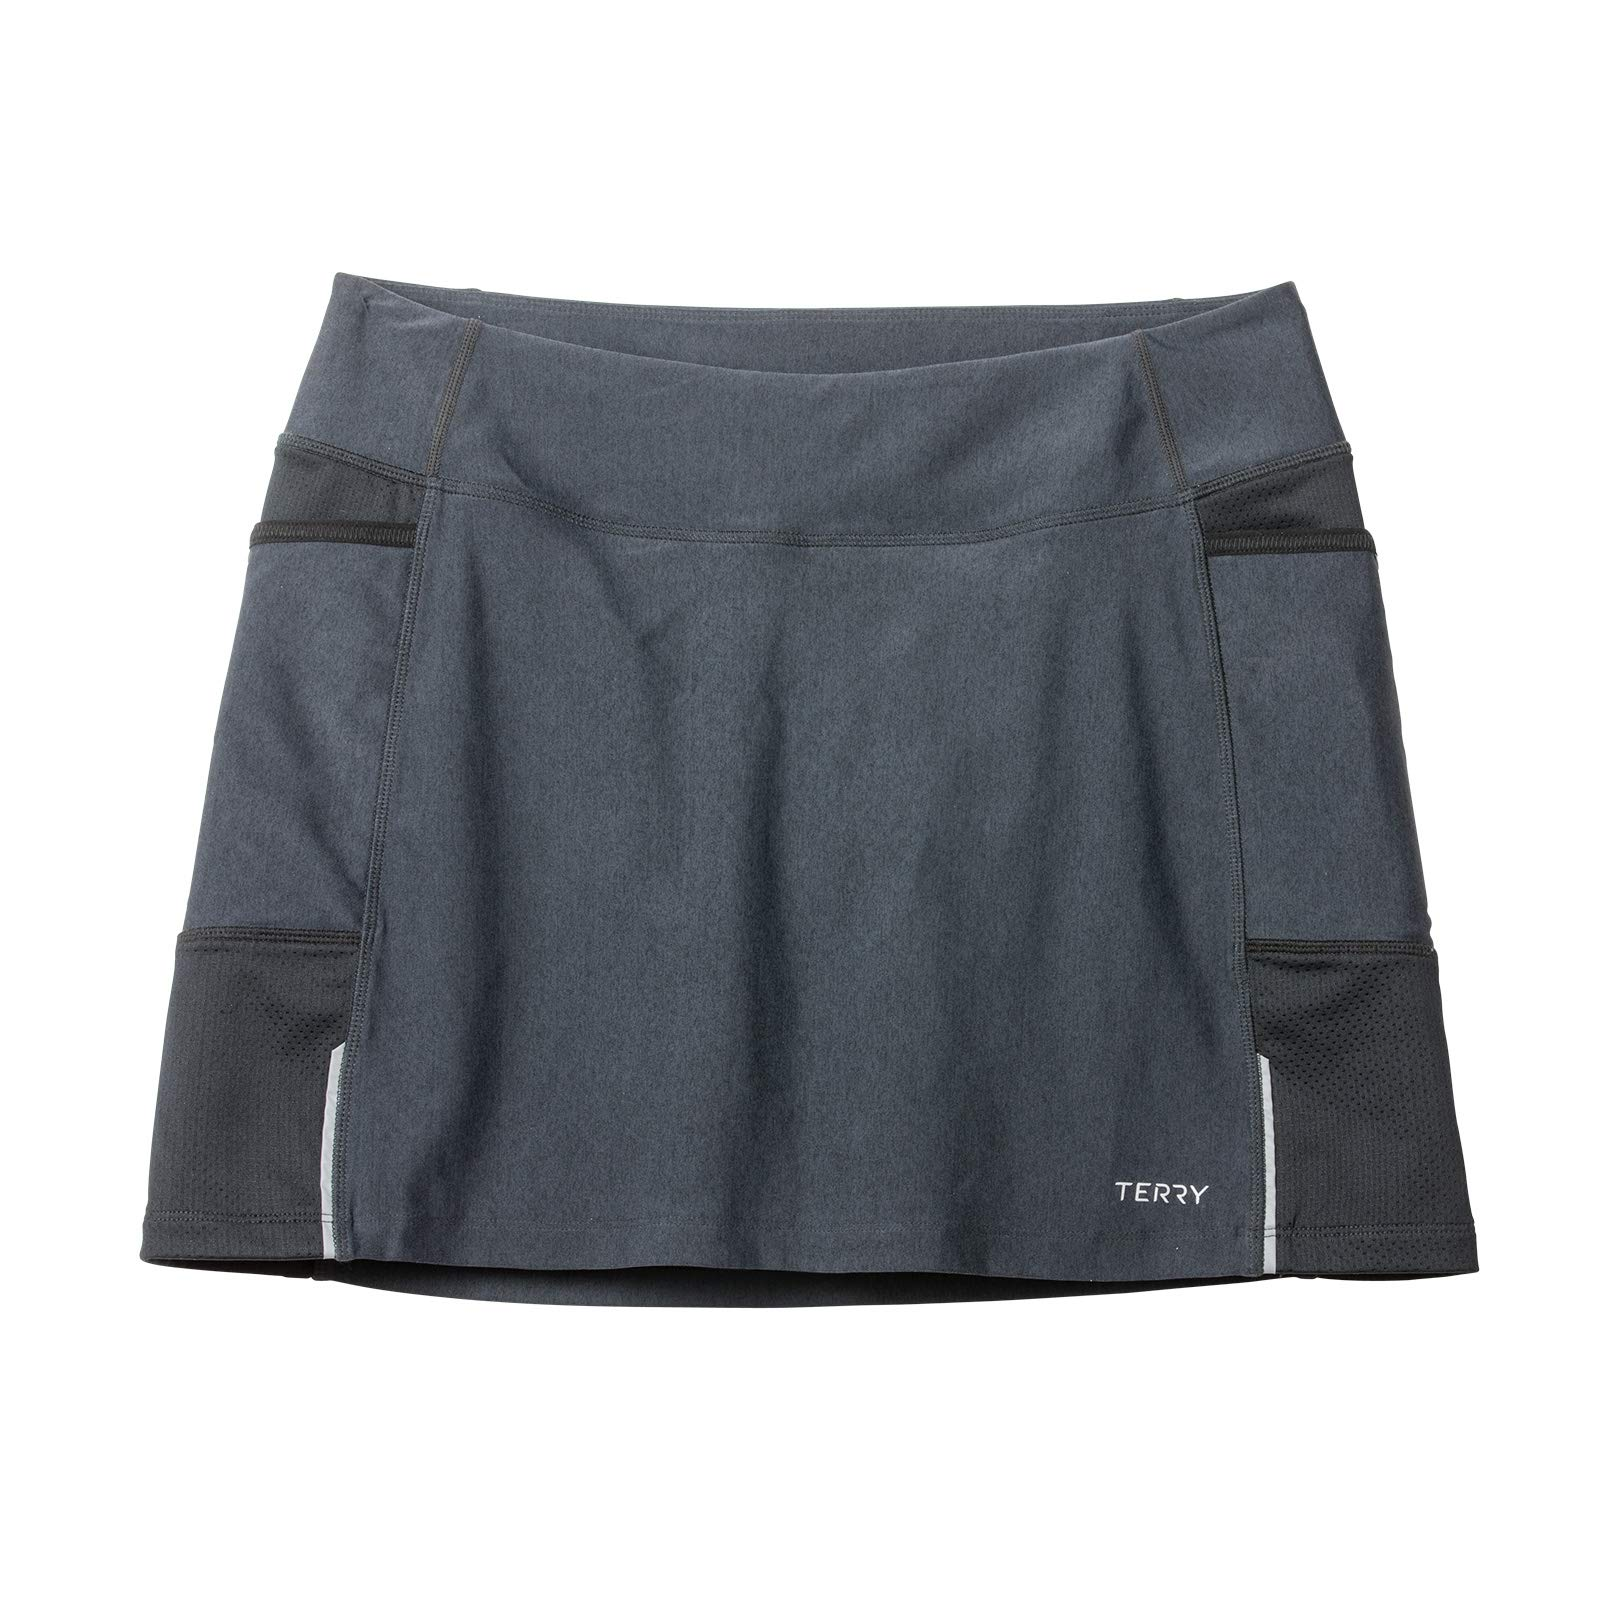 Terry Fixie Skort Women's Cycling Athletic Sport Skirt Stretch Wrap with Padded Chamois Liner Bike Shorts - Black Pepper - Large by Terry